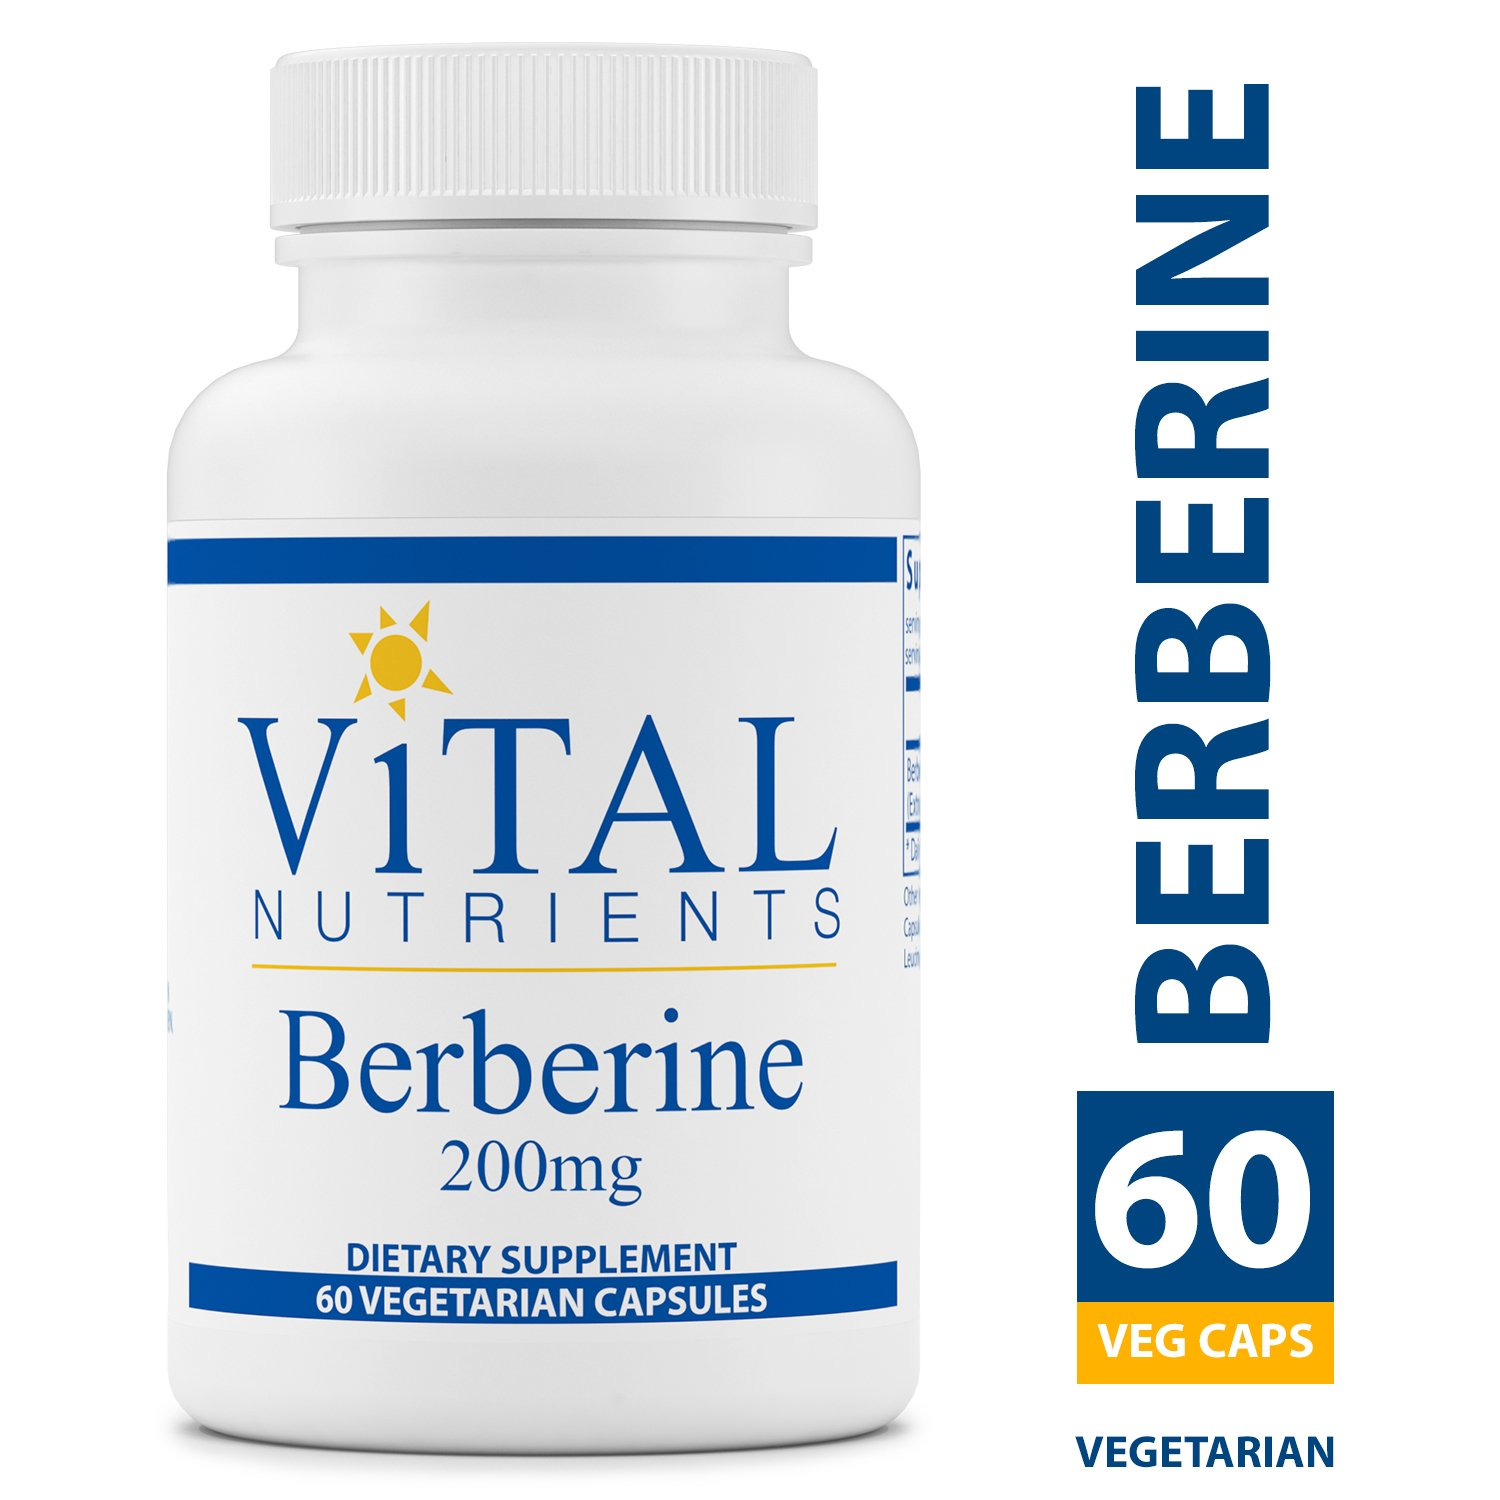 Vital Nutrients - Berberine 200 mg - Supports Regular and Normal Bowel Function - 60 Capsules by Vital Nutrients (Image #1)